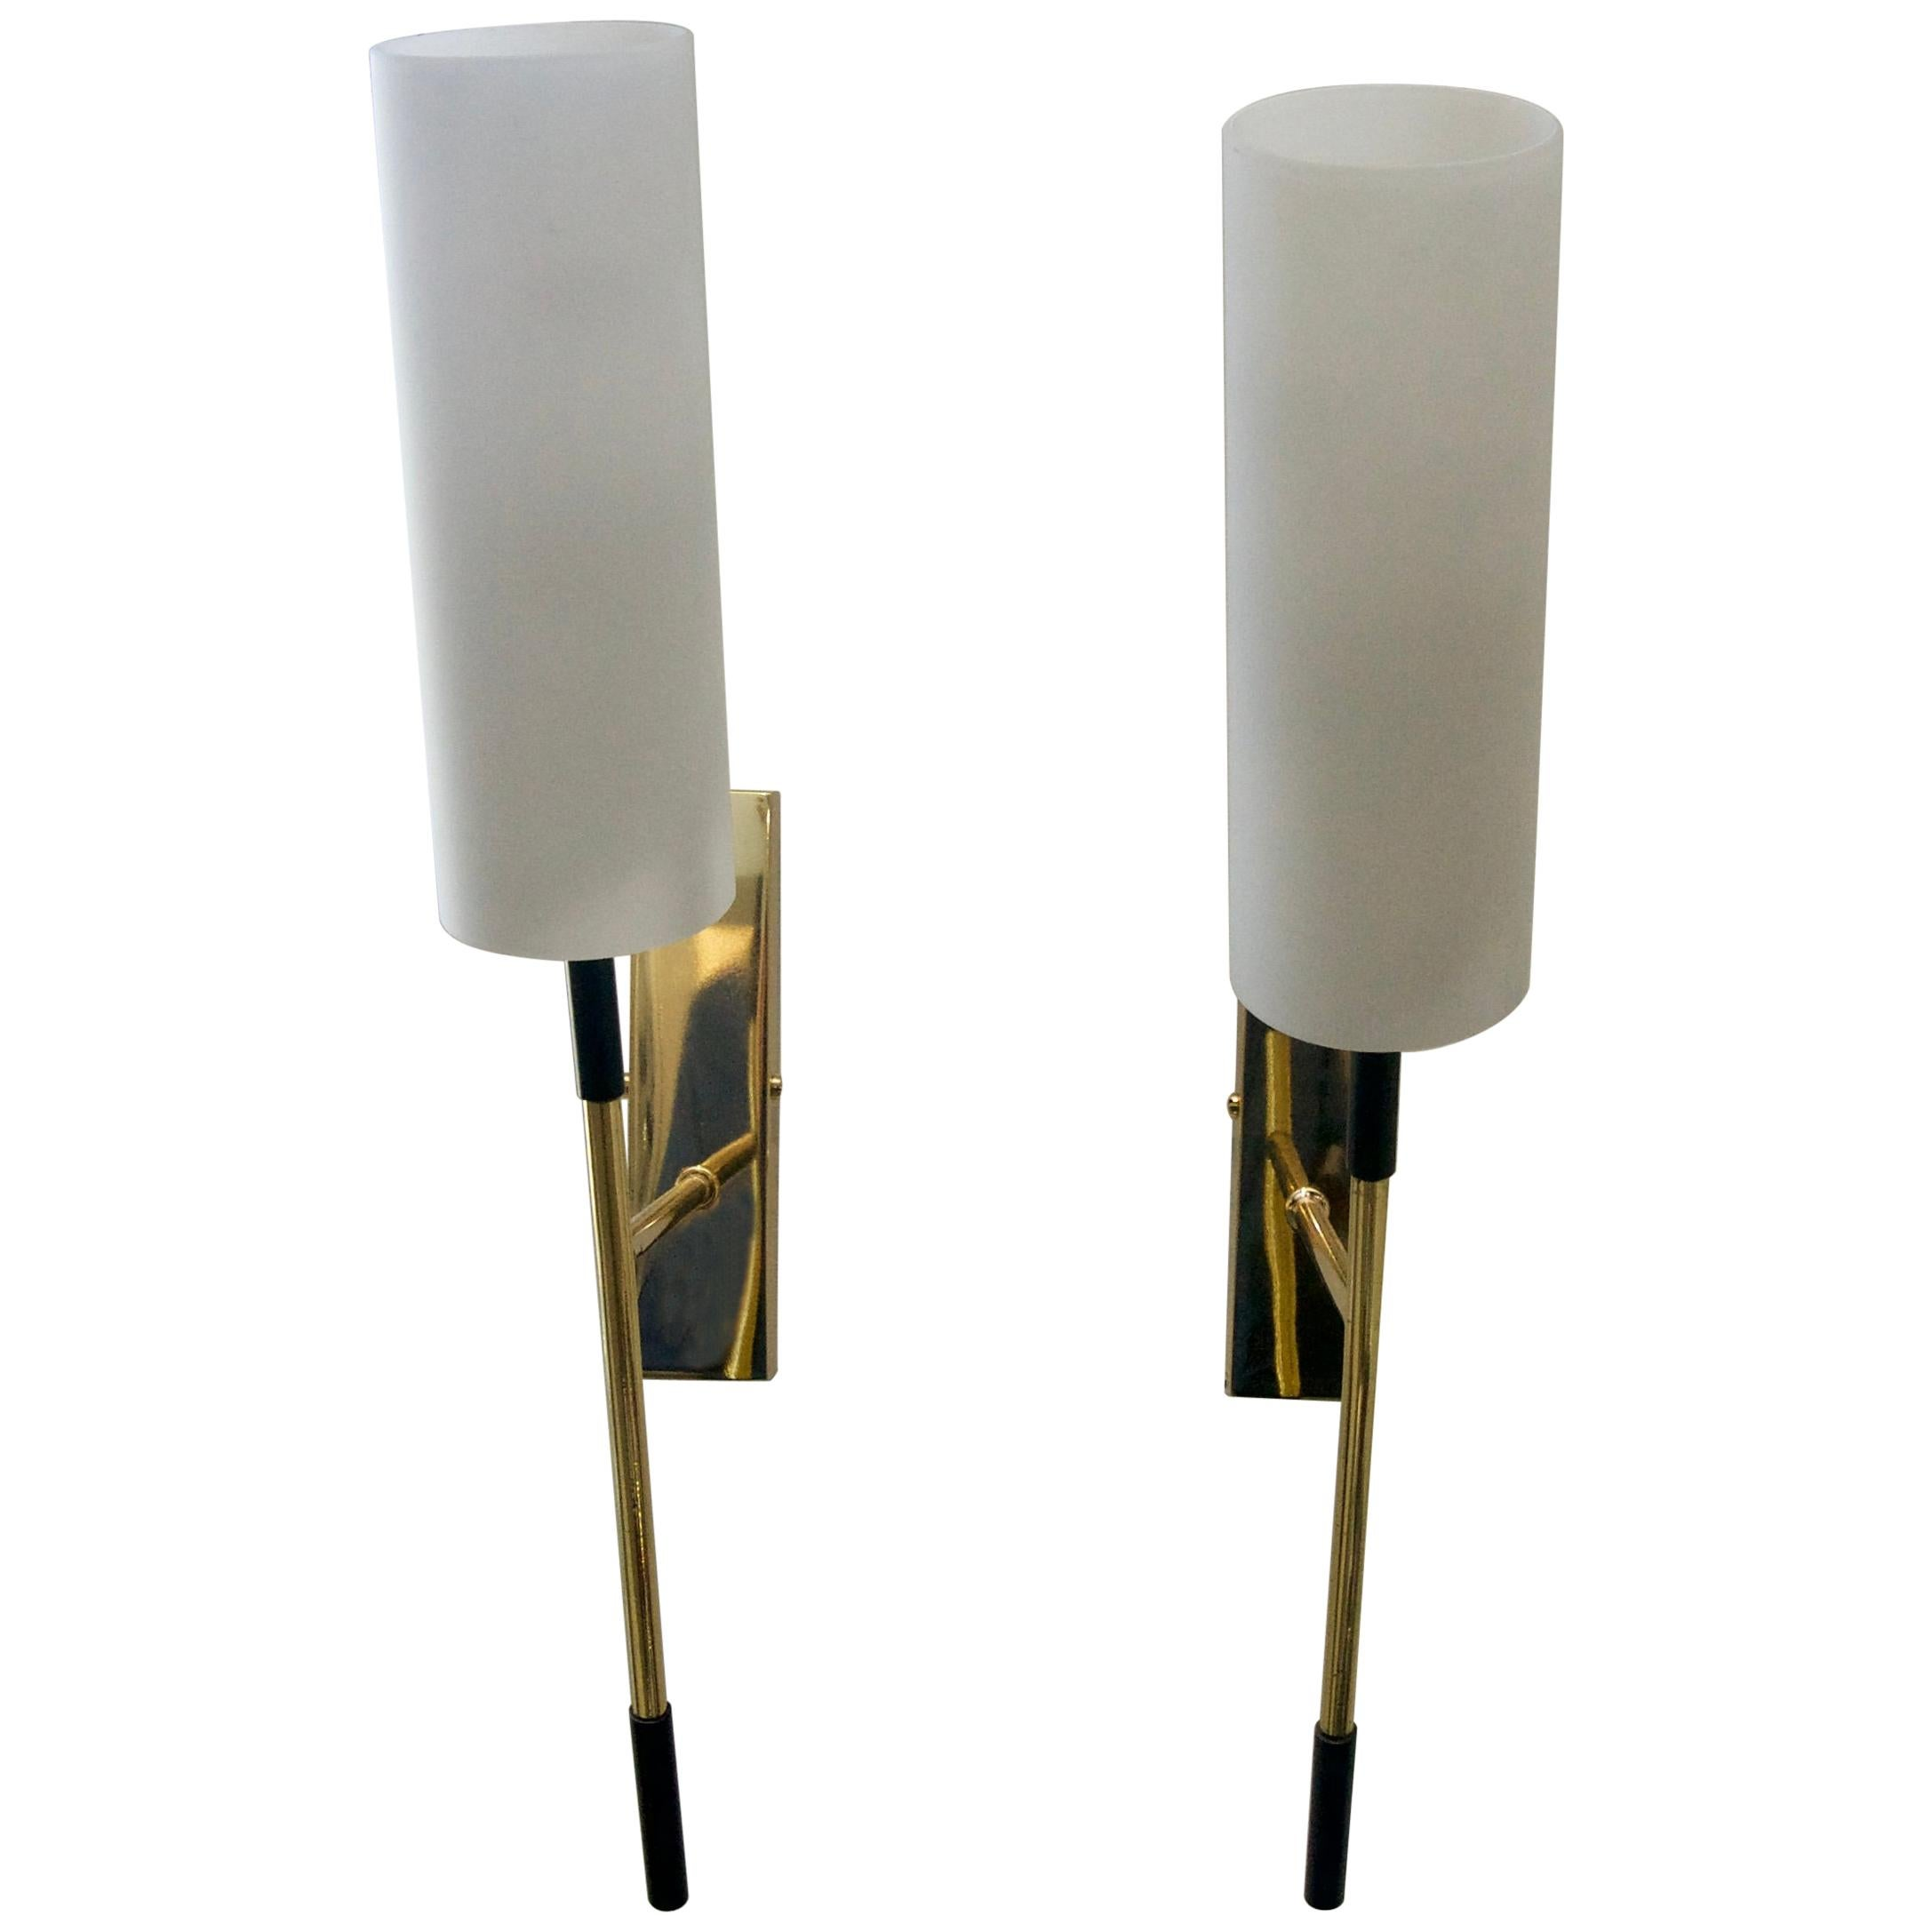 Pair of Brass and Glass Sconces attributed to Stilnovo, circa 1958